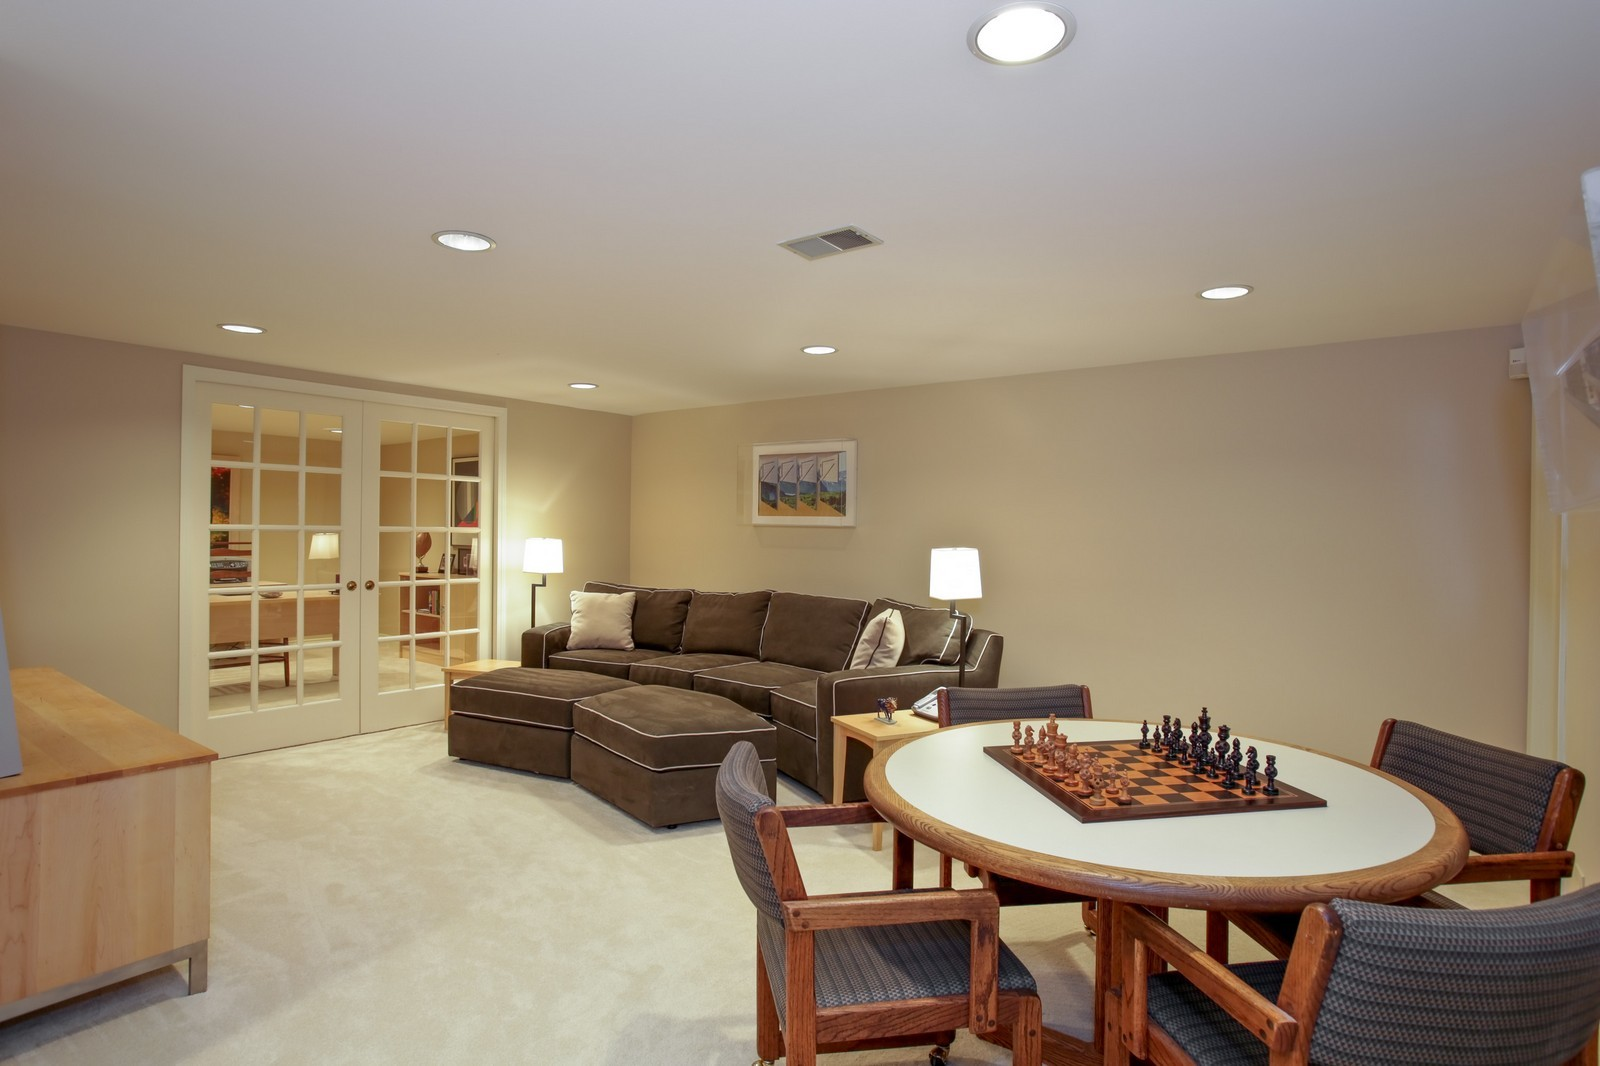 Real Estate Photography - 25W445 Plamondon Rd, Wheaton, IL, 60189 - Basement Rec Room